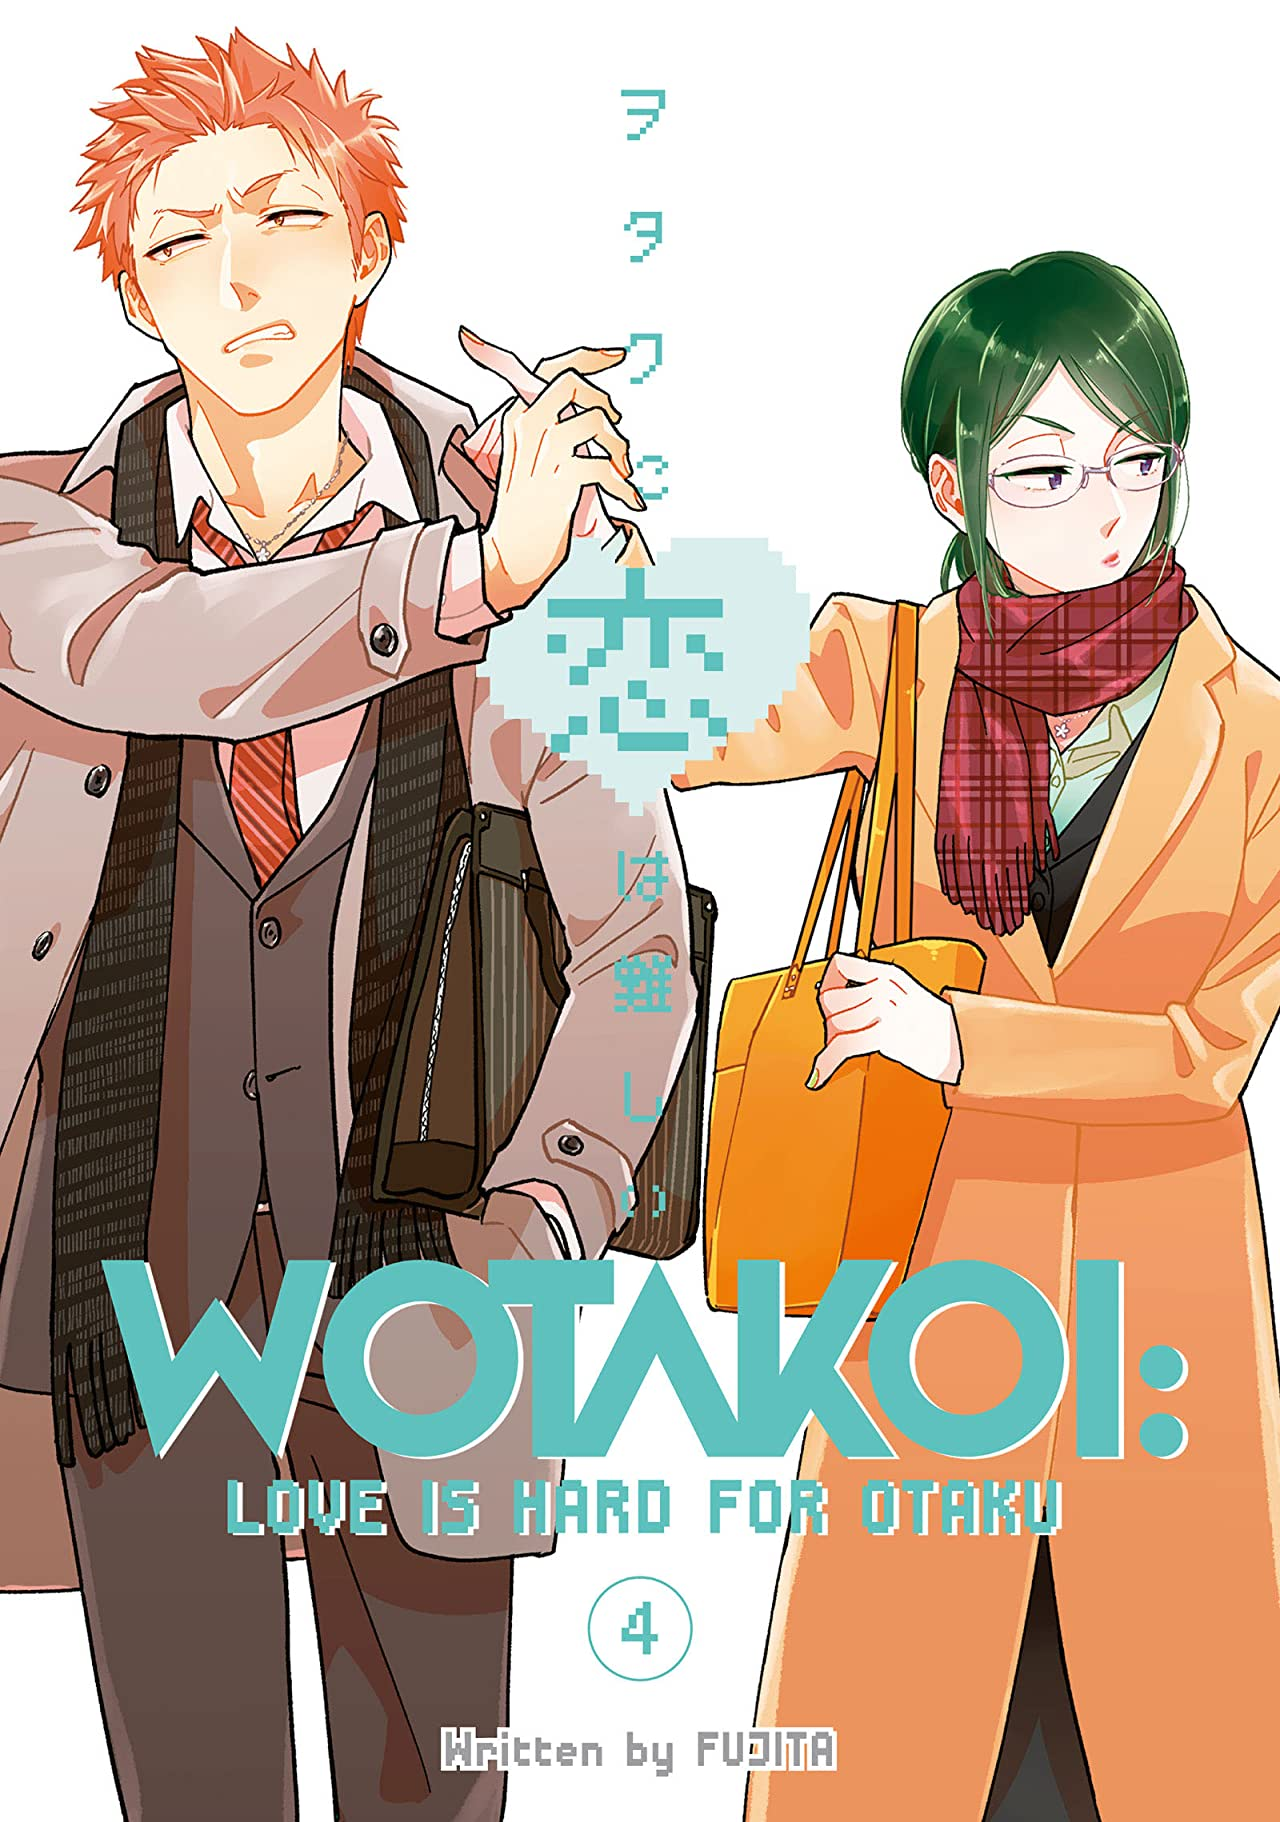 Wotakoi: Love is Hard for Otaku Vol. 4